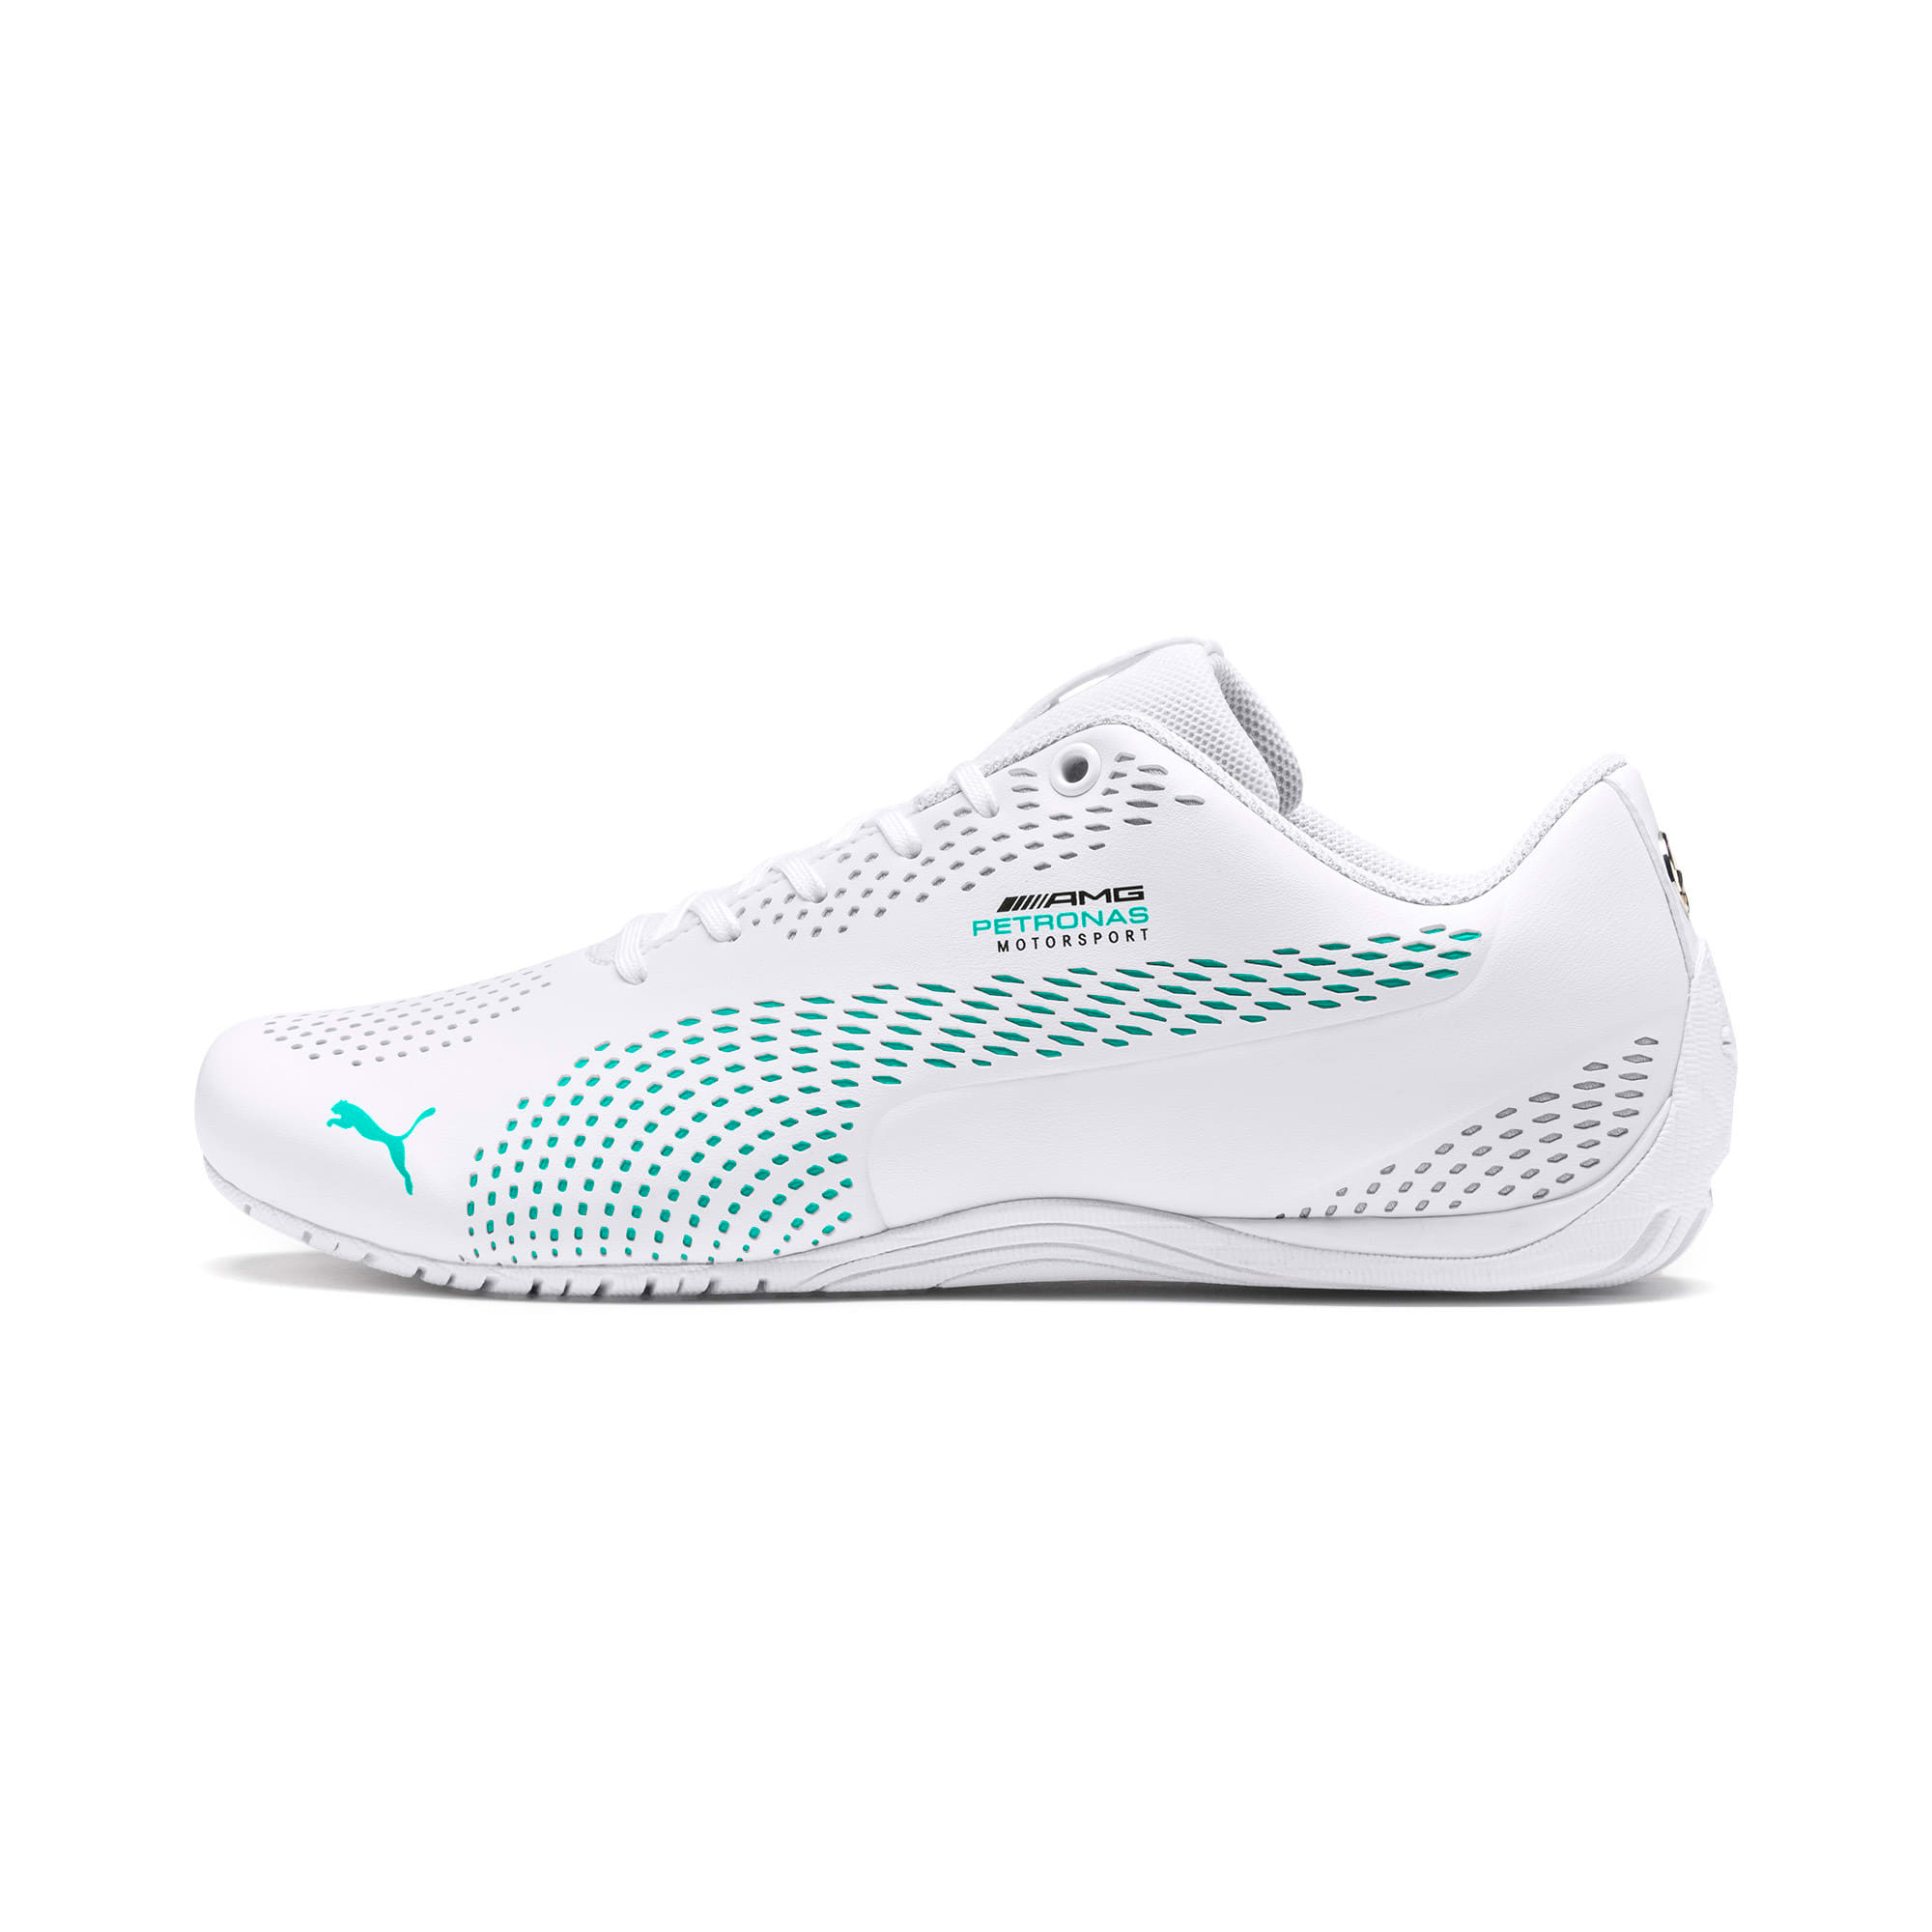 Thumbnail 1 of Mercedes AMG Petronas Drift Cat 5 Ultra II Trainers, Puma White-Spectra Green, medium-IND